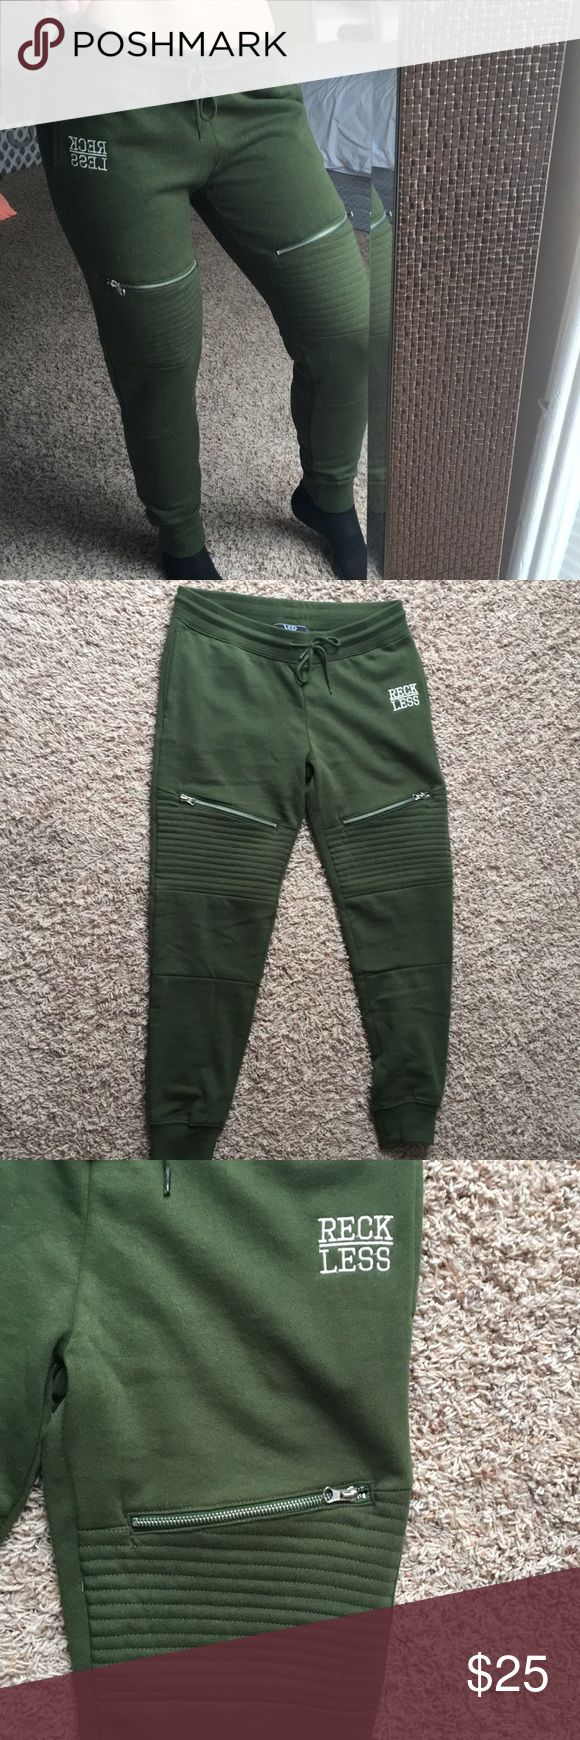 Young & Reckless Jogger Sweatpants with Zippers Brand New! Never worn, only tried on. Simply too big and I could not return them since it was an all sales final purchase. Absolutely love them otherwise! Young & Reckless Pants Track Pants & Joggers